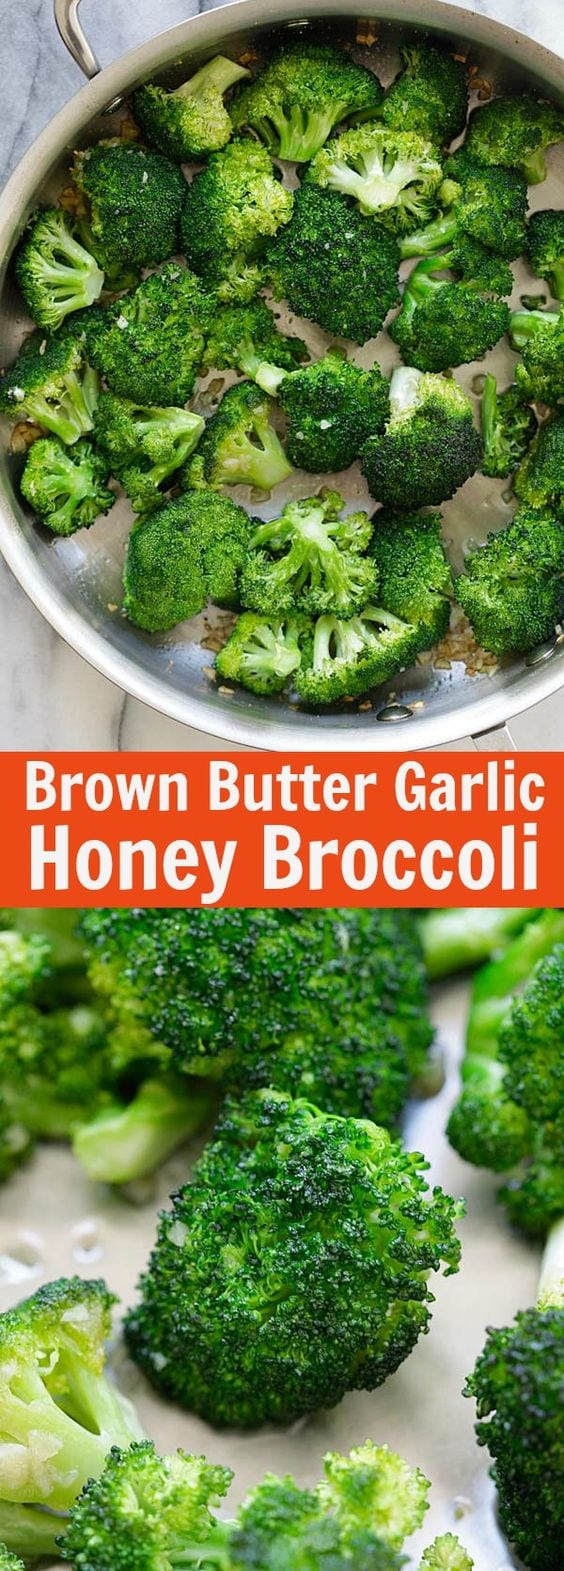 Brown Butter Garlic Honey Roasted Broccoli – dress up plain roasted broccoli with brown butter, garlic and honey. Broccoli has never tasted this good | rasamalaysia.com